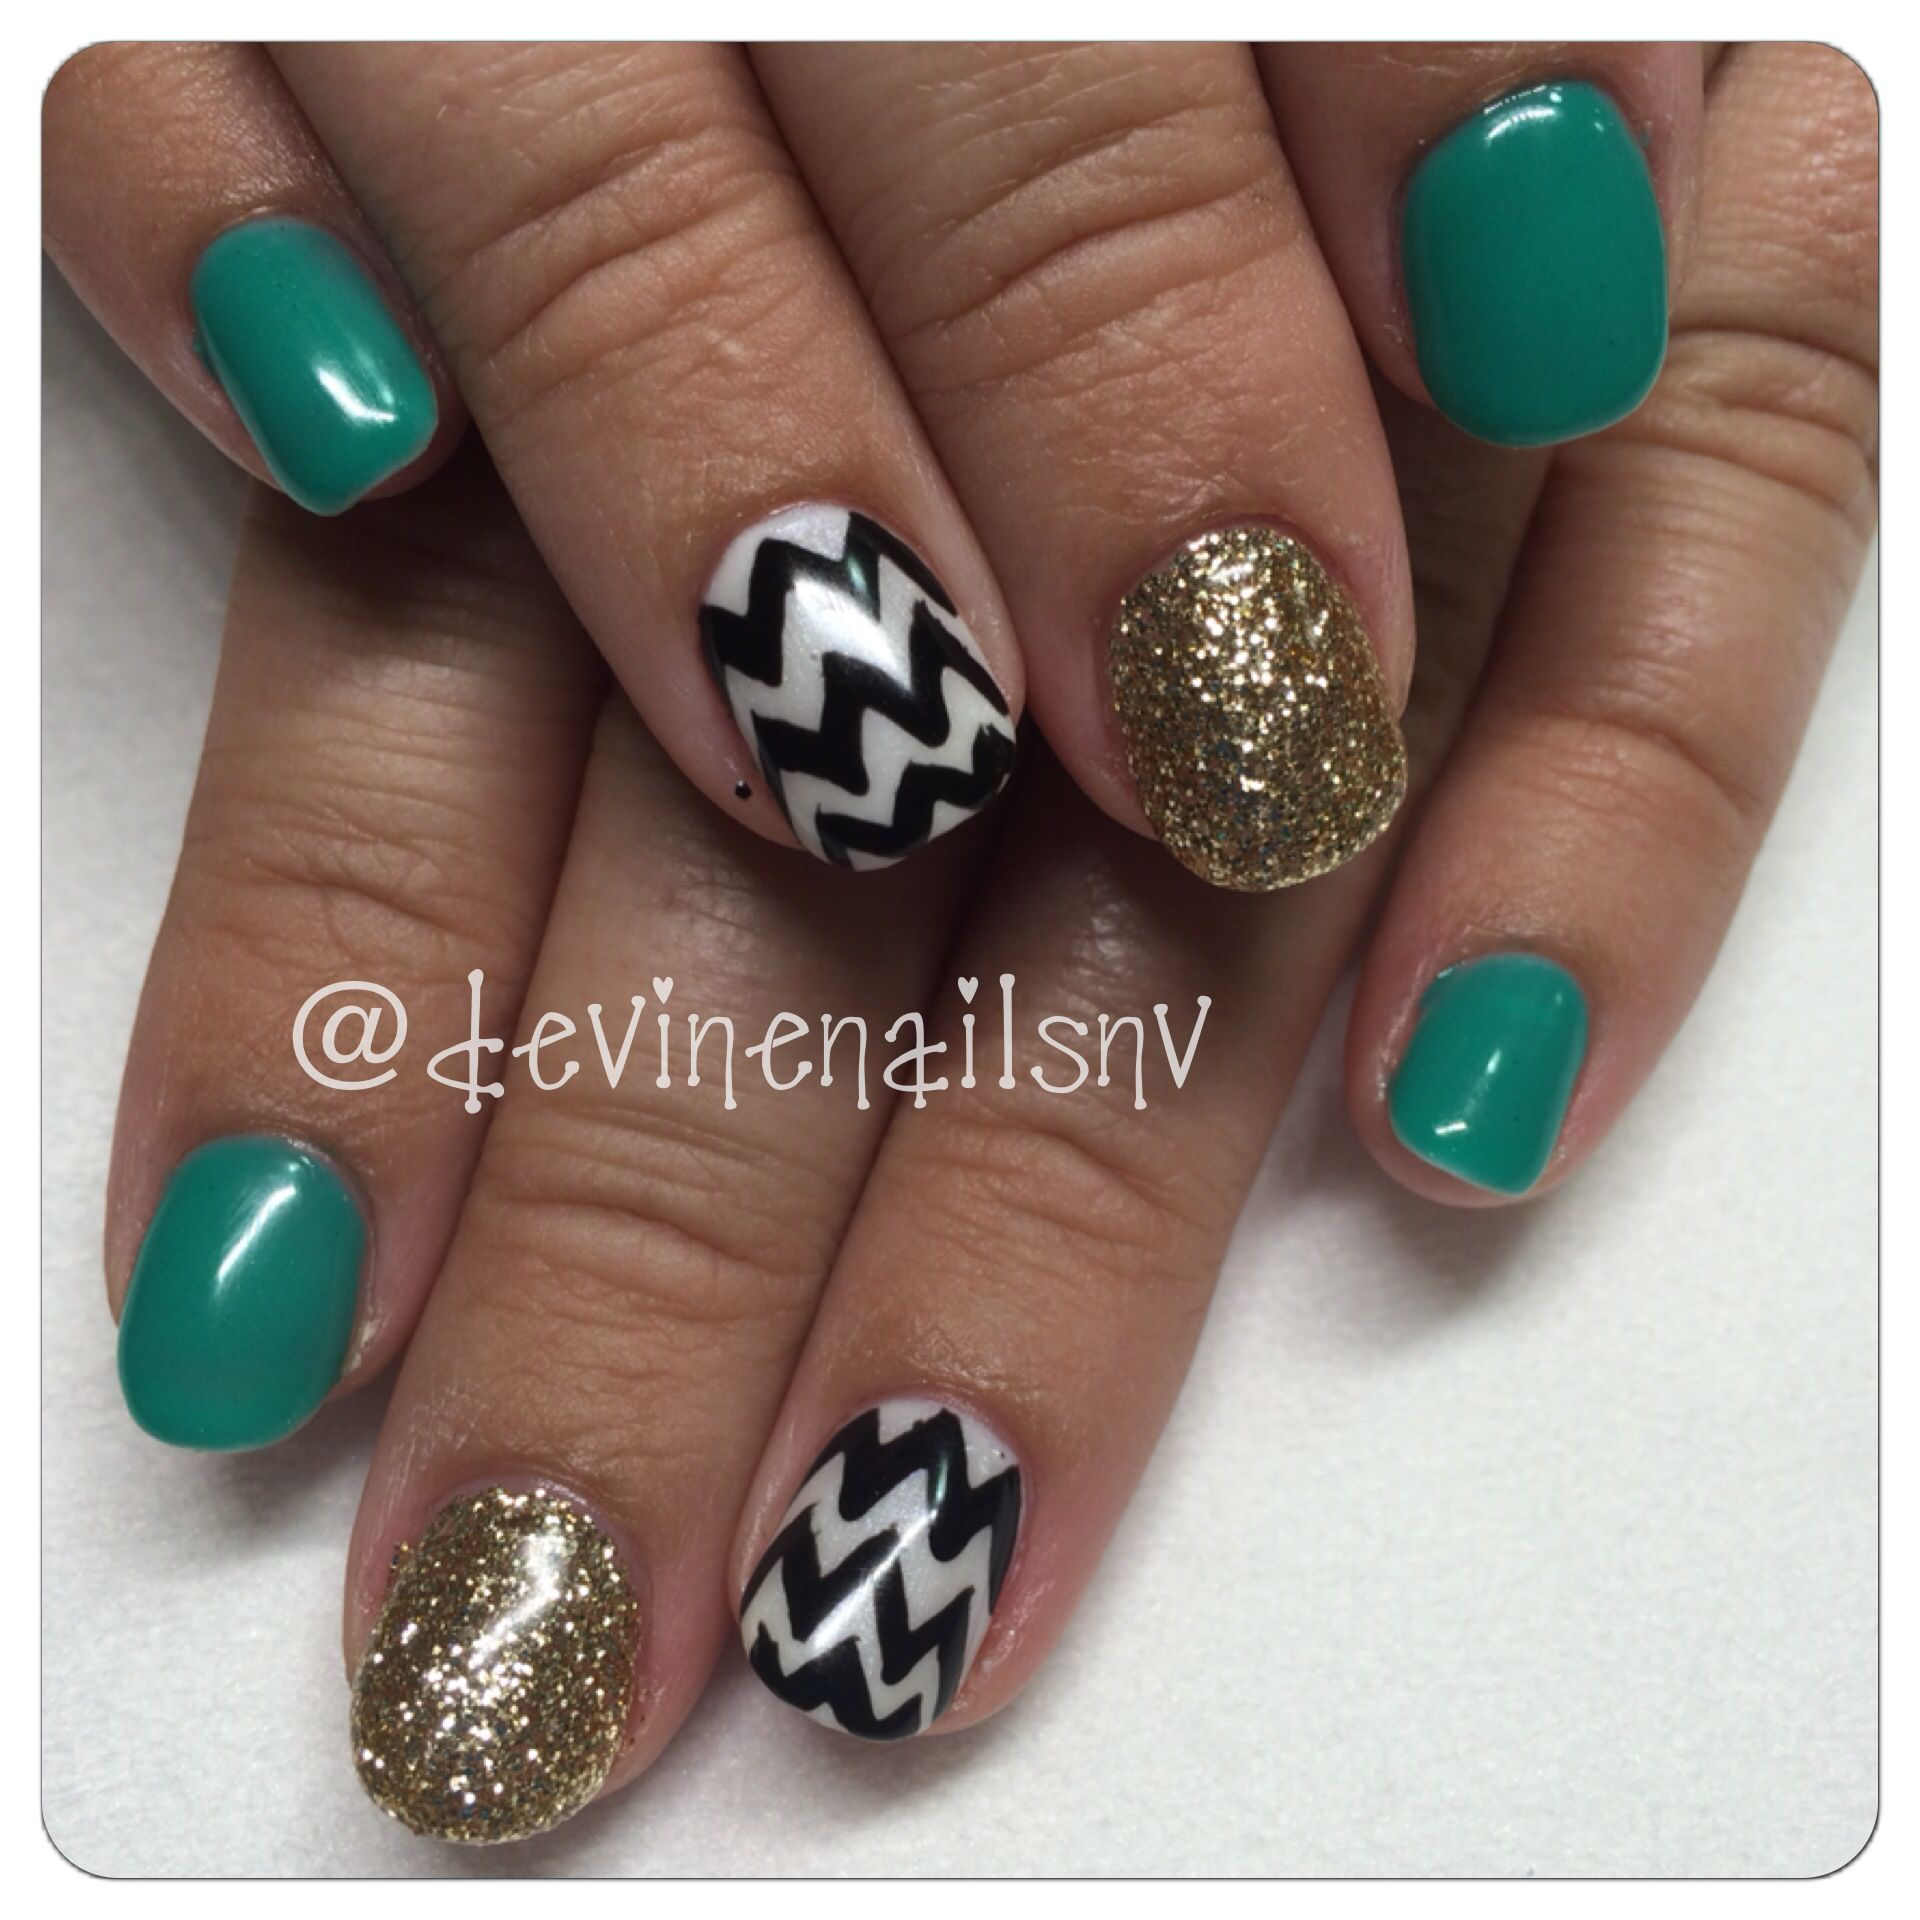 Pin by Chelsea Devine on Nails by Chelsea Devine | Pinterest | Nails ...